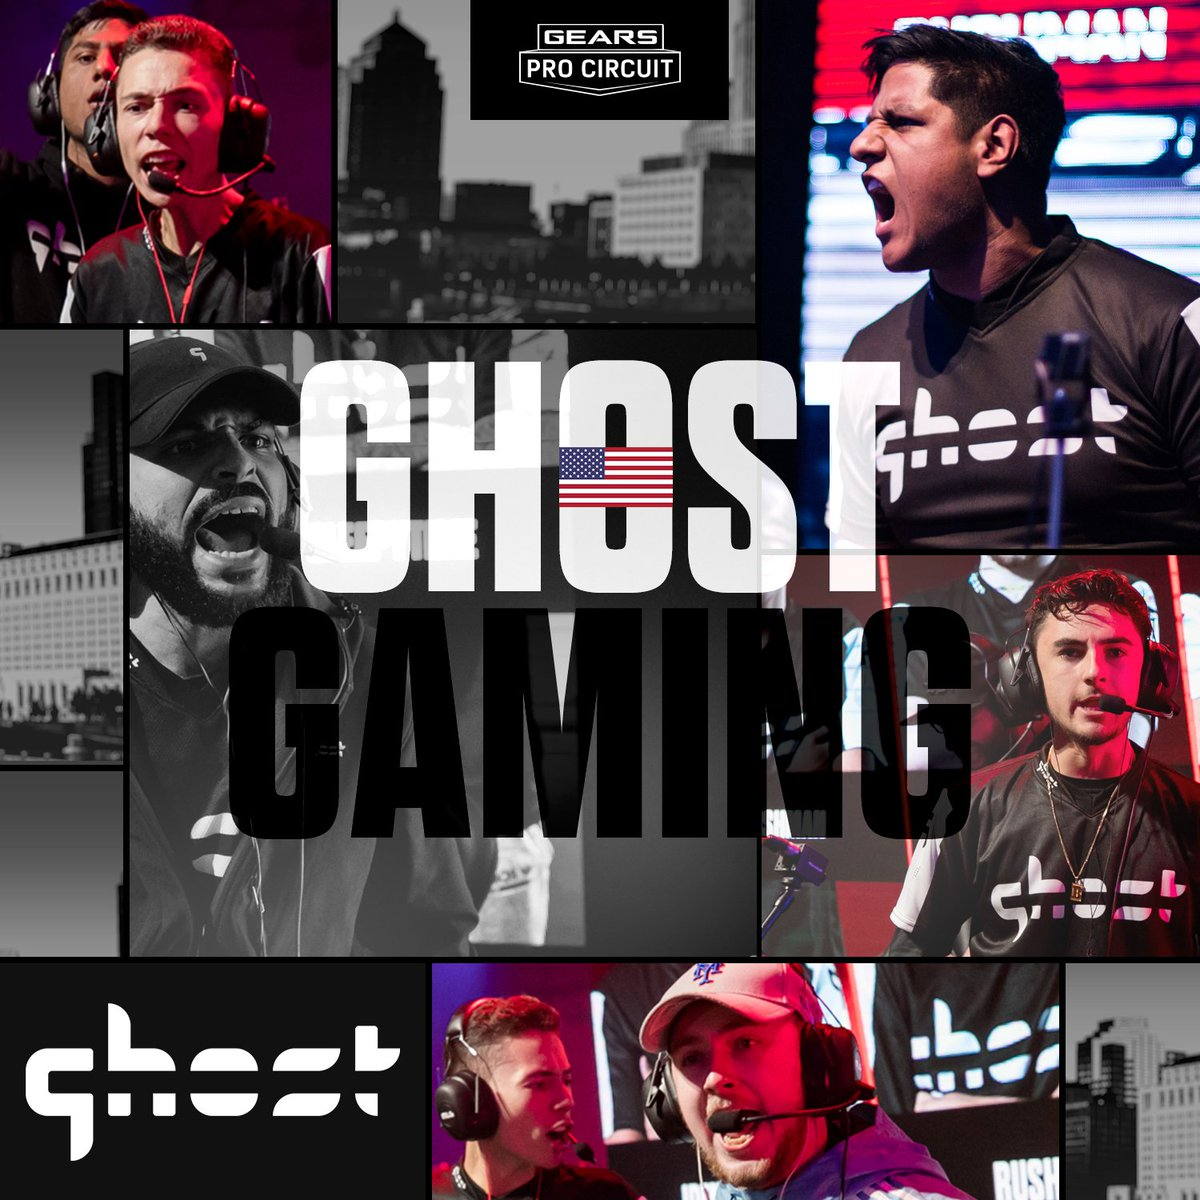 LIVE NOW: @FableGG fight for their tournament life against @GhostGaming  Tune in on http://live.gearsofwar.com